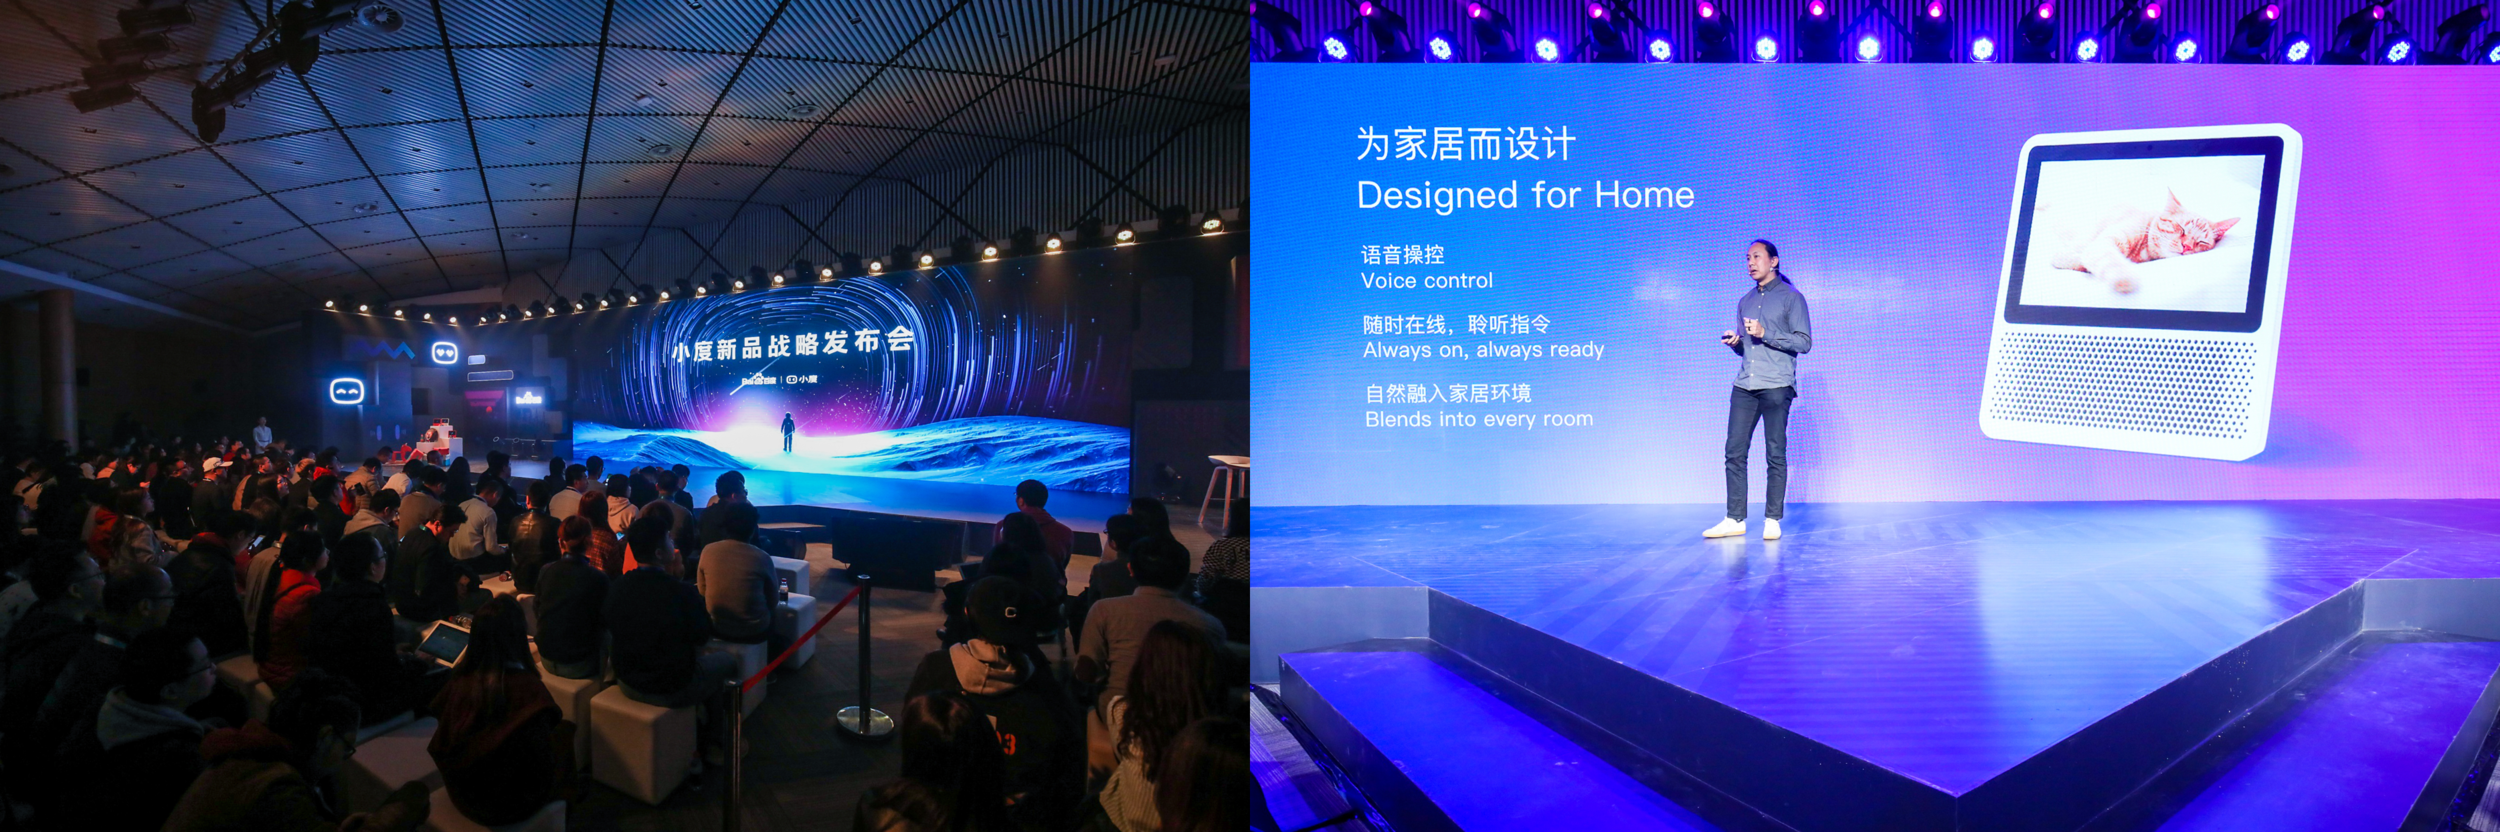 Y Studios founder/CEO, Wai-Loong Lim, speaking at Baidu lunch event of Xiaodu Smart Display 1S in Beijing on February 28, 2019